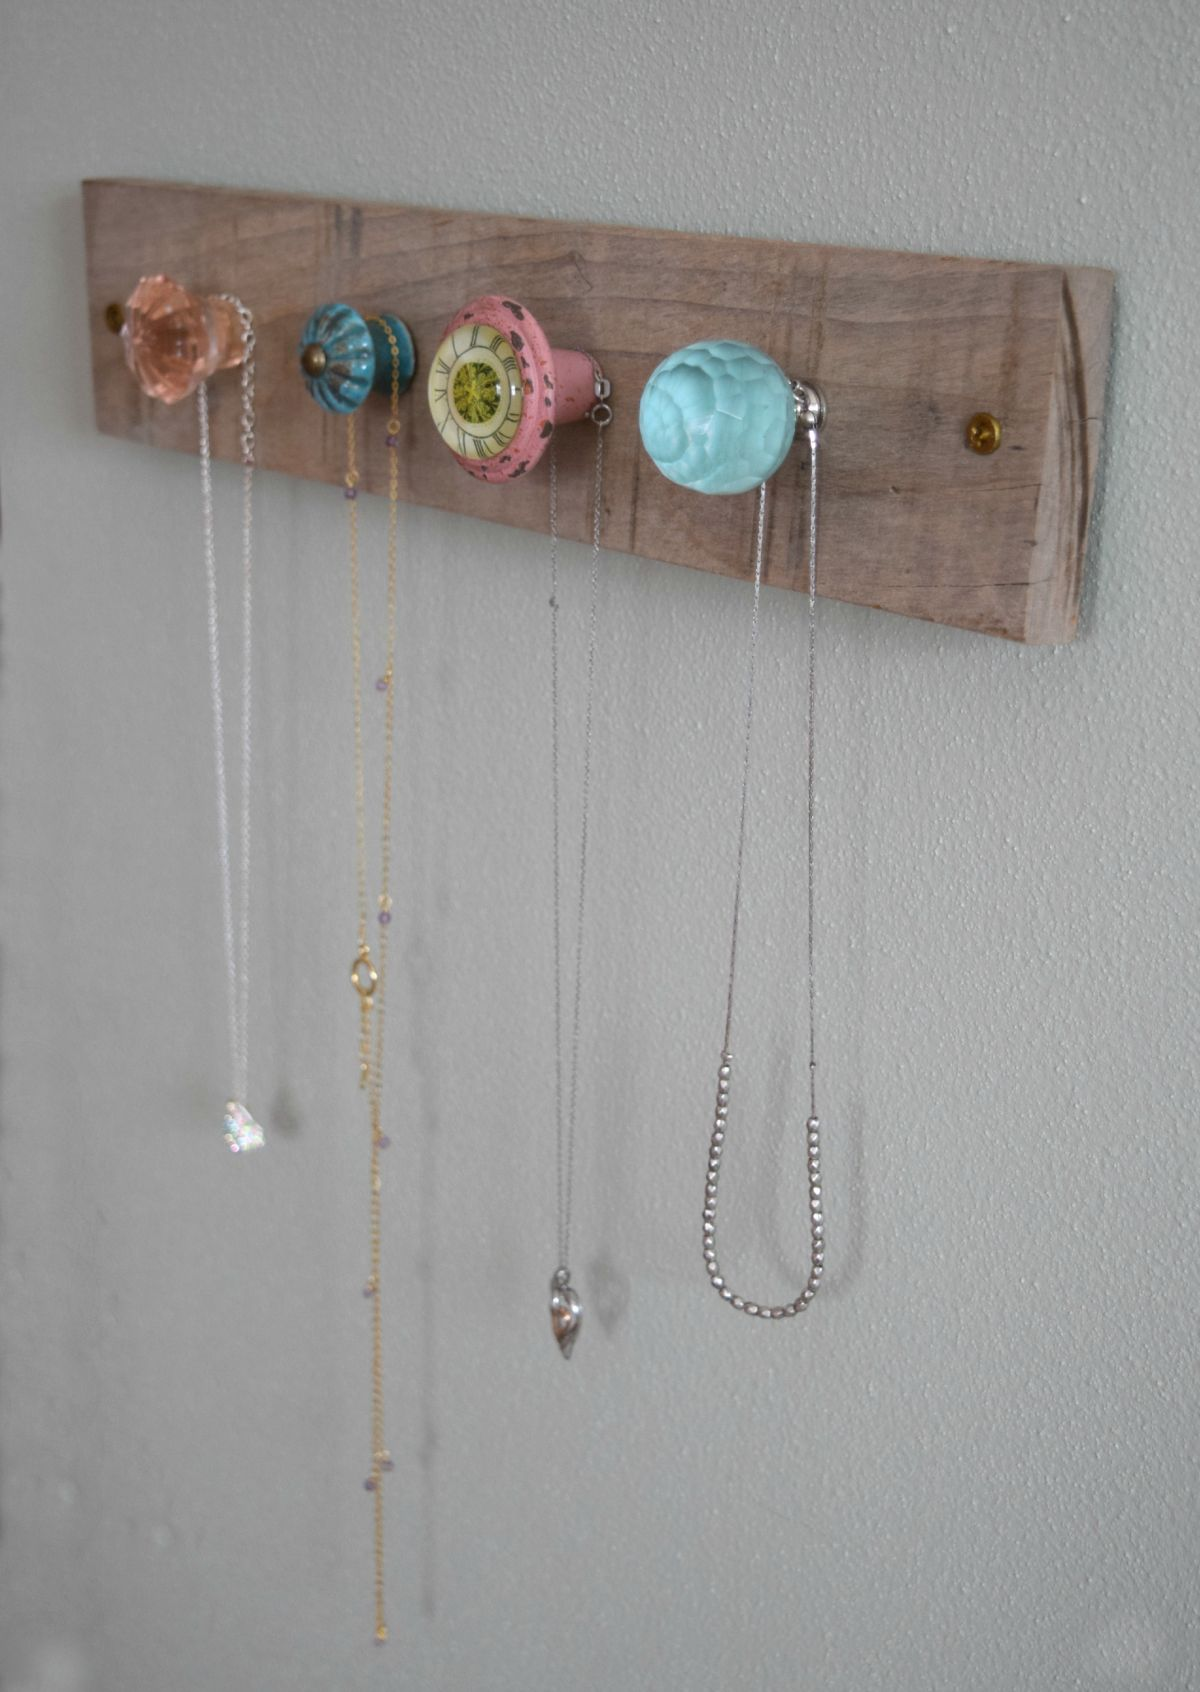 Creative-and-feminine-jewelry-wall-holder